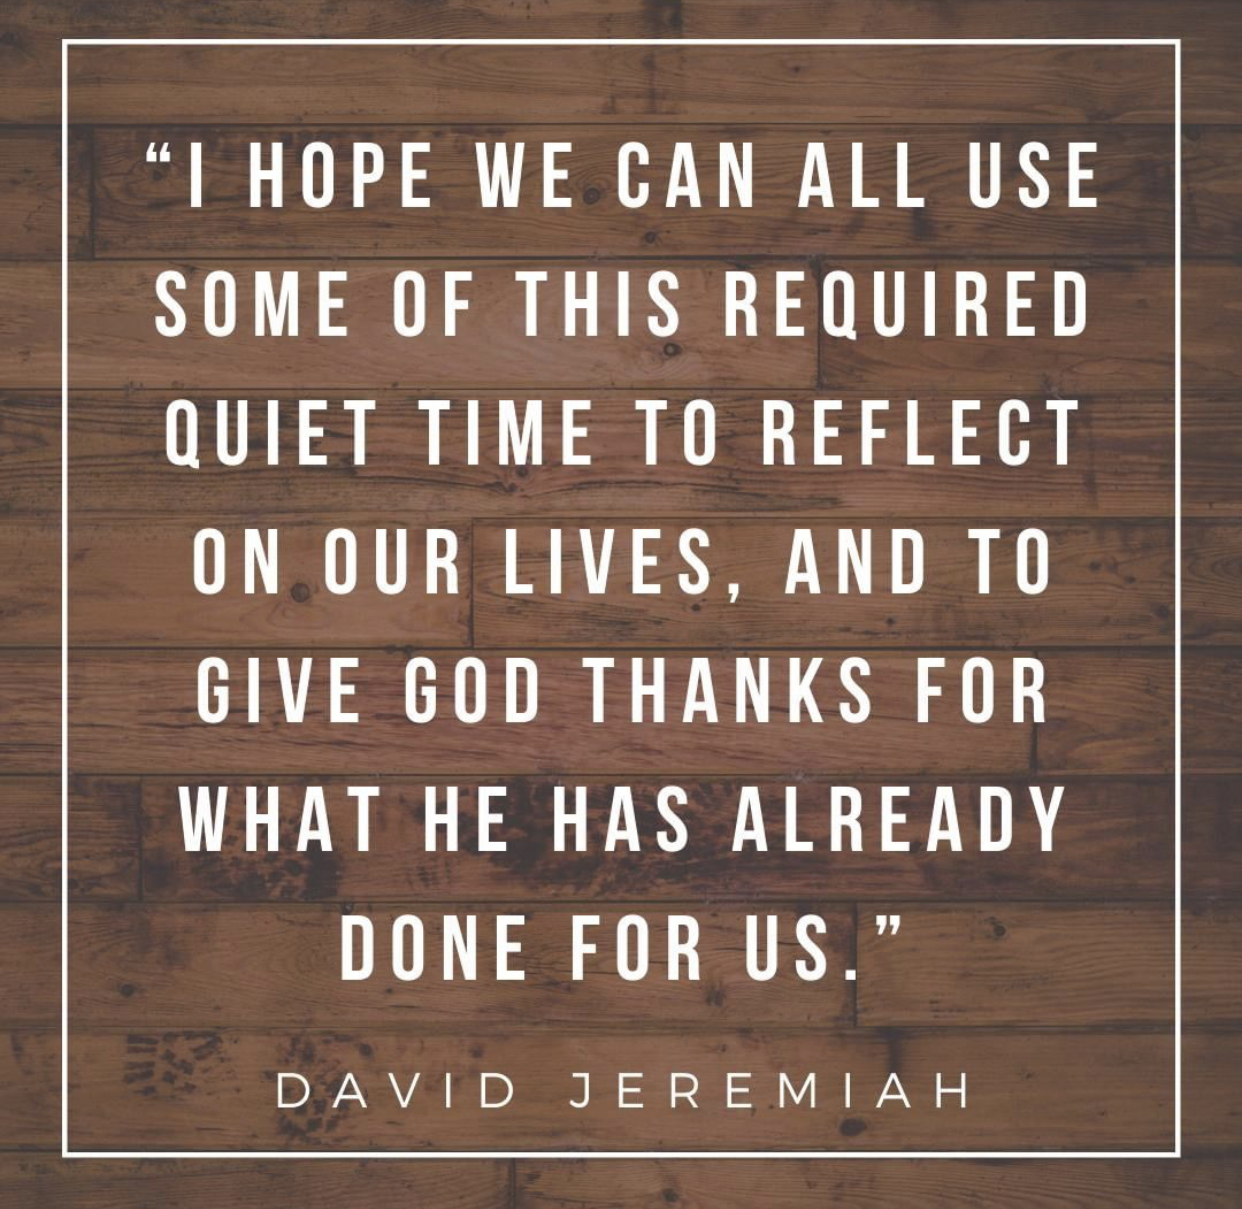 Quote from David Jeremiah